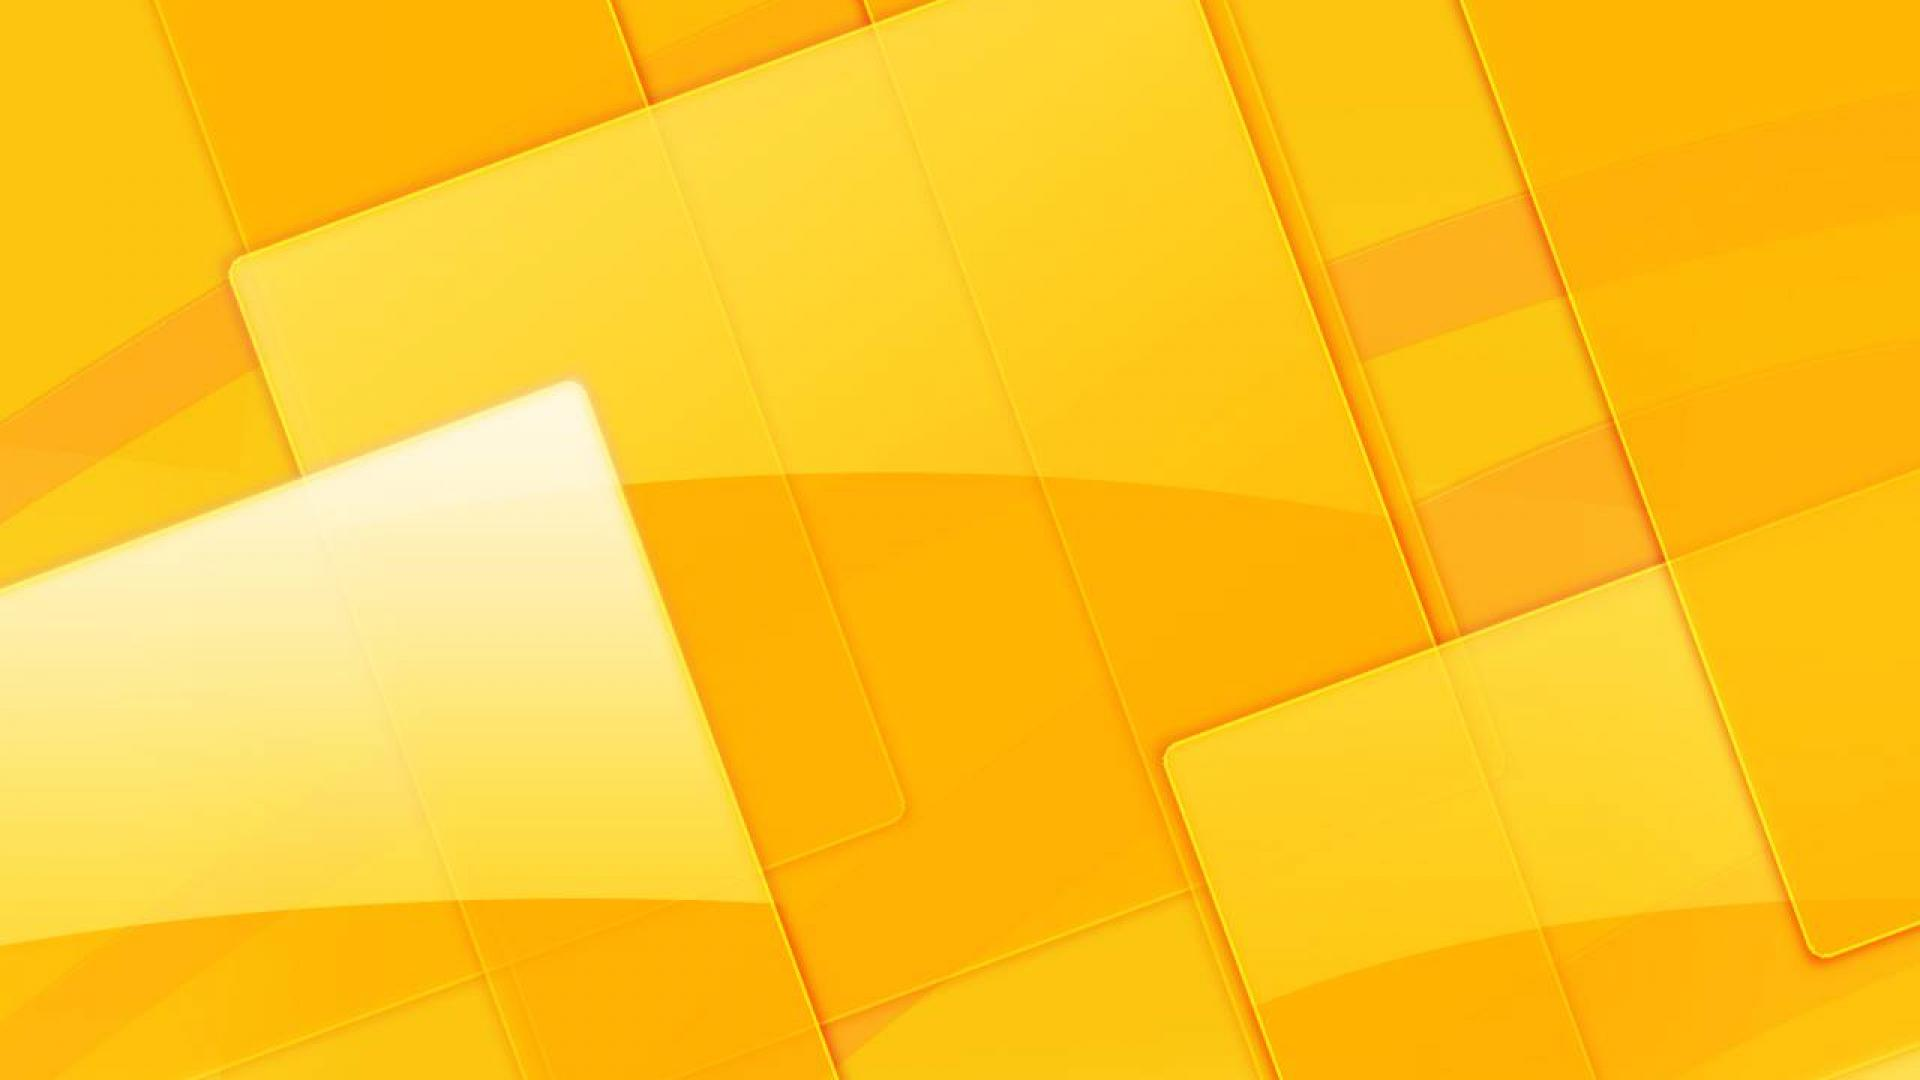 Free Download Yellow Wallpaper Sparknotes 6 High